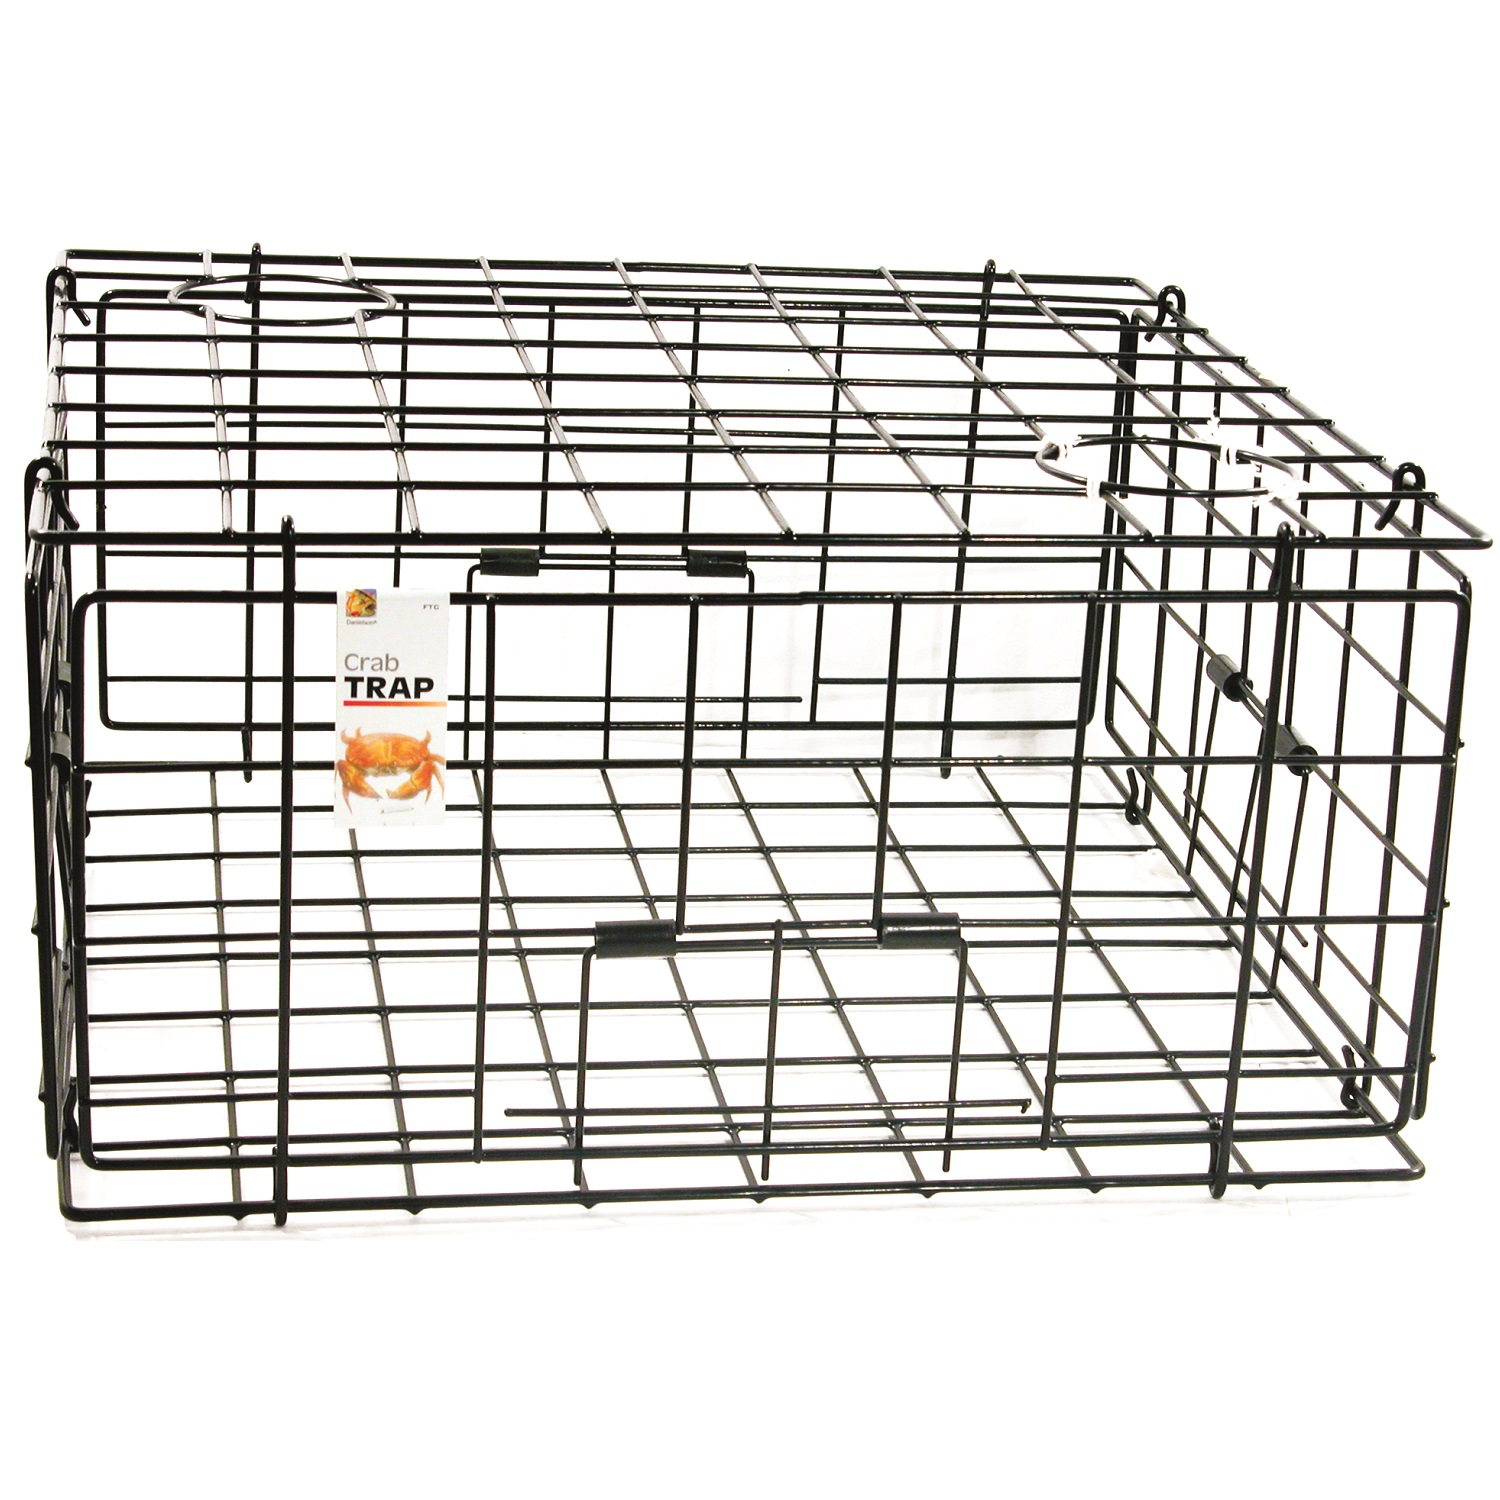 Danielson Pacific FTC Crab Trap-24in x 24in x 13in SKU: FTC